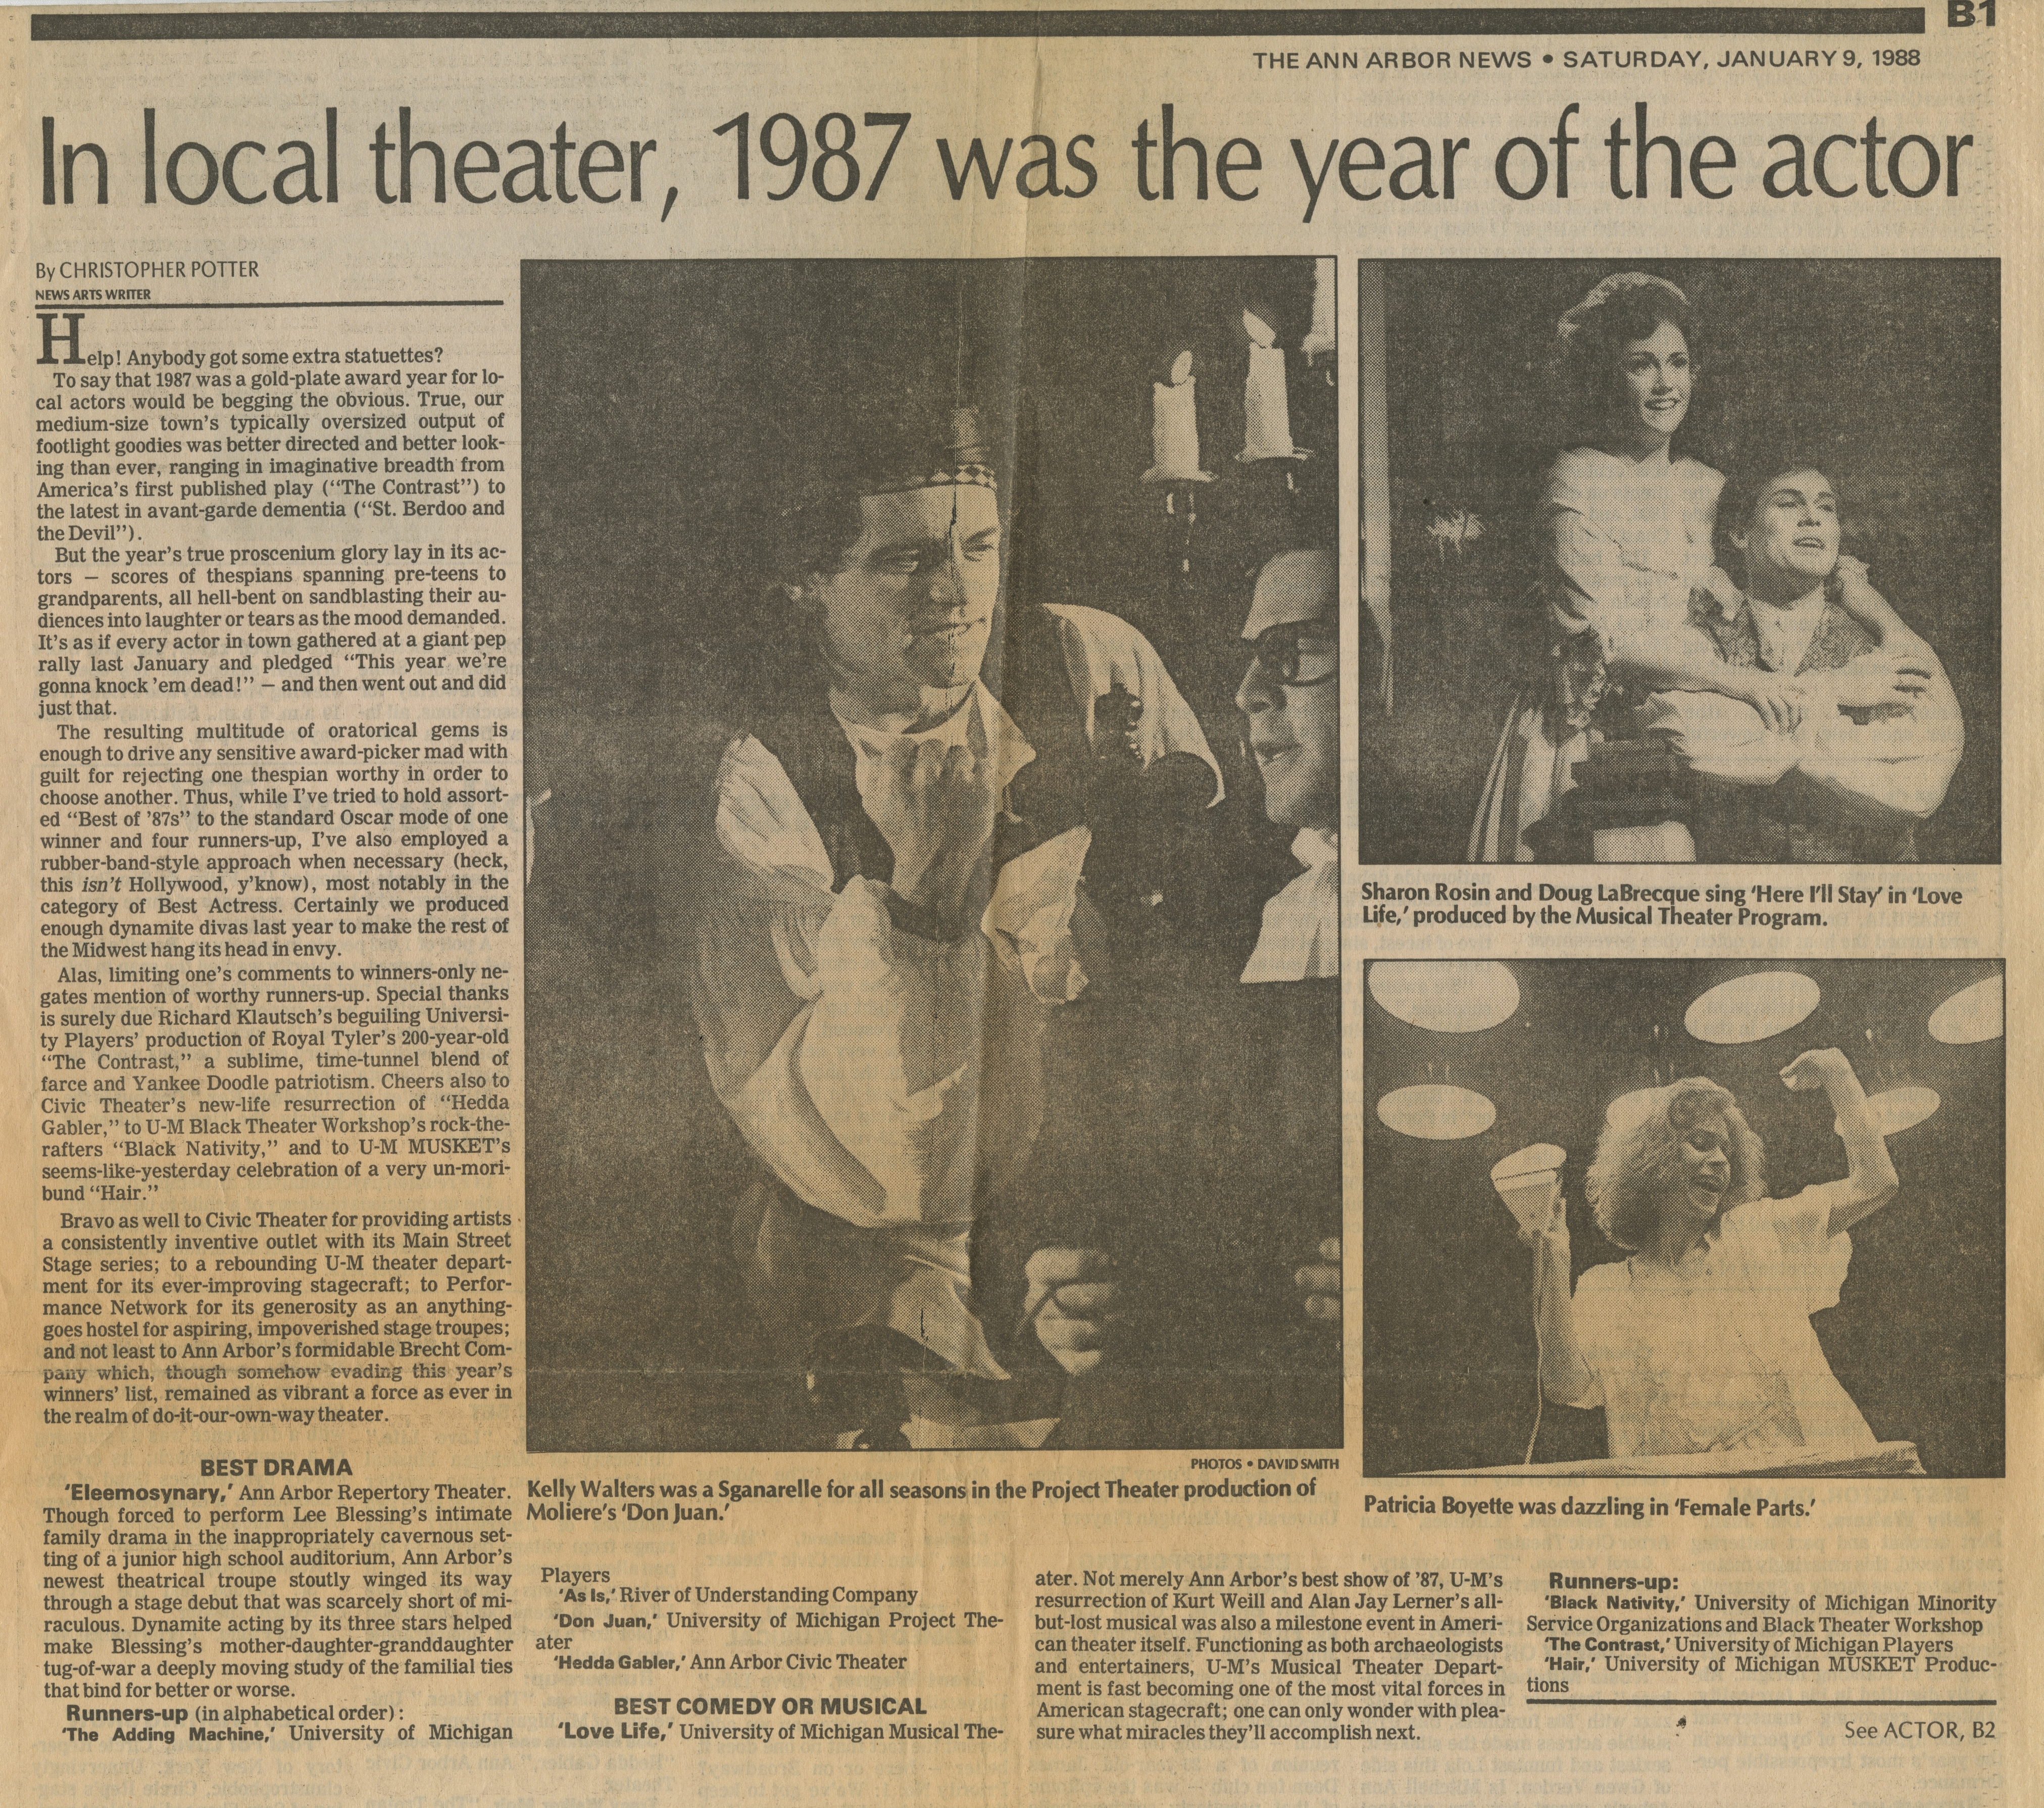 In local theater, 1987 was the year of the actor image